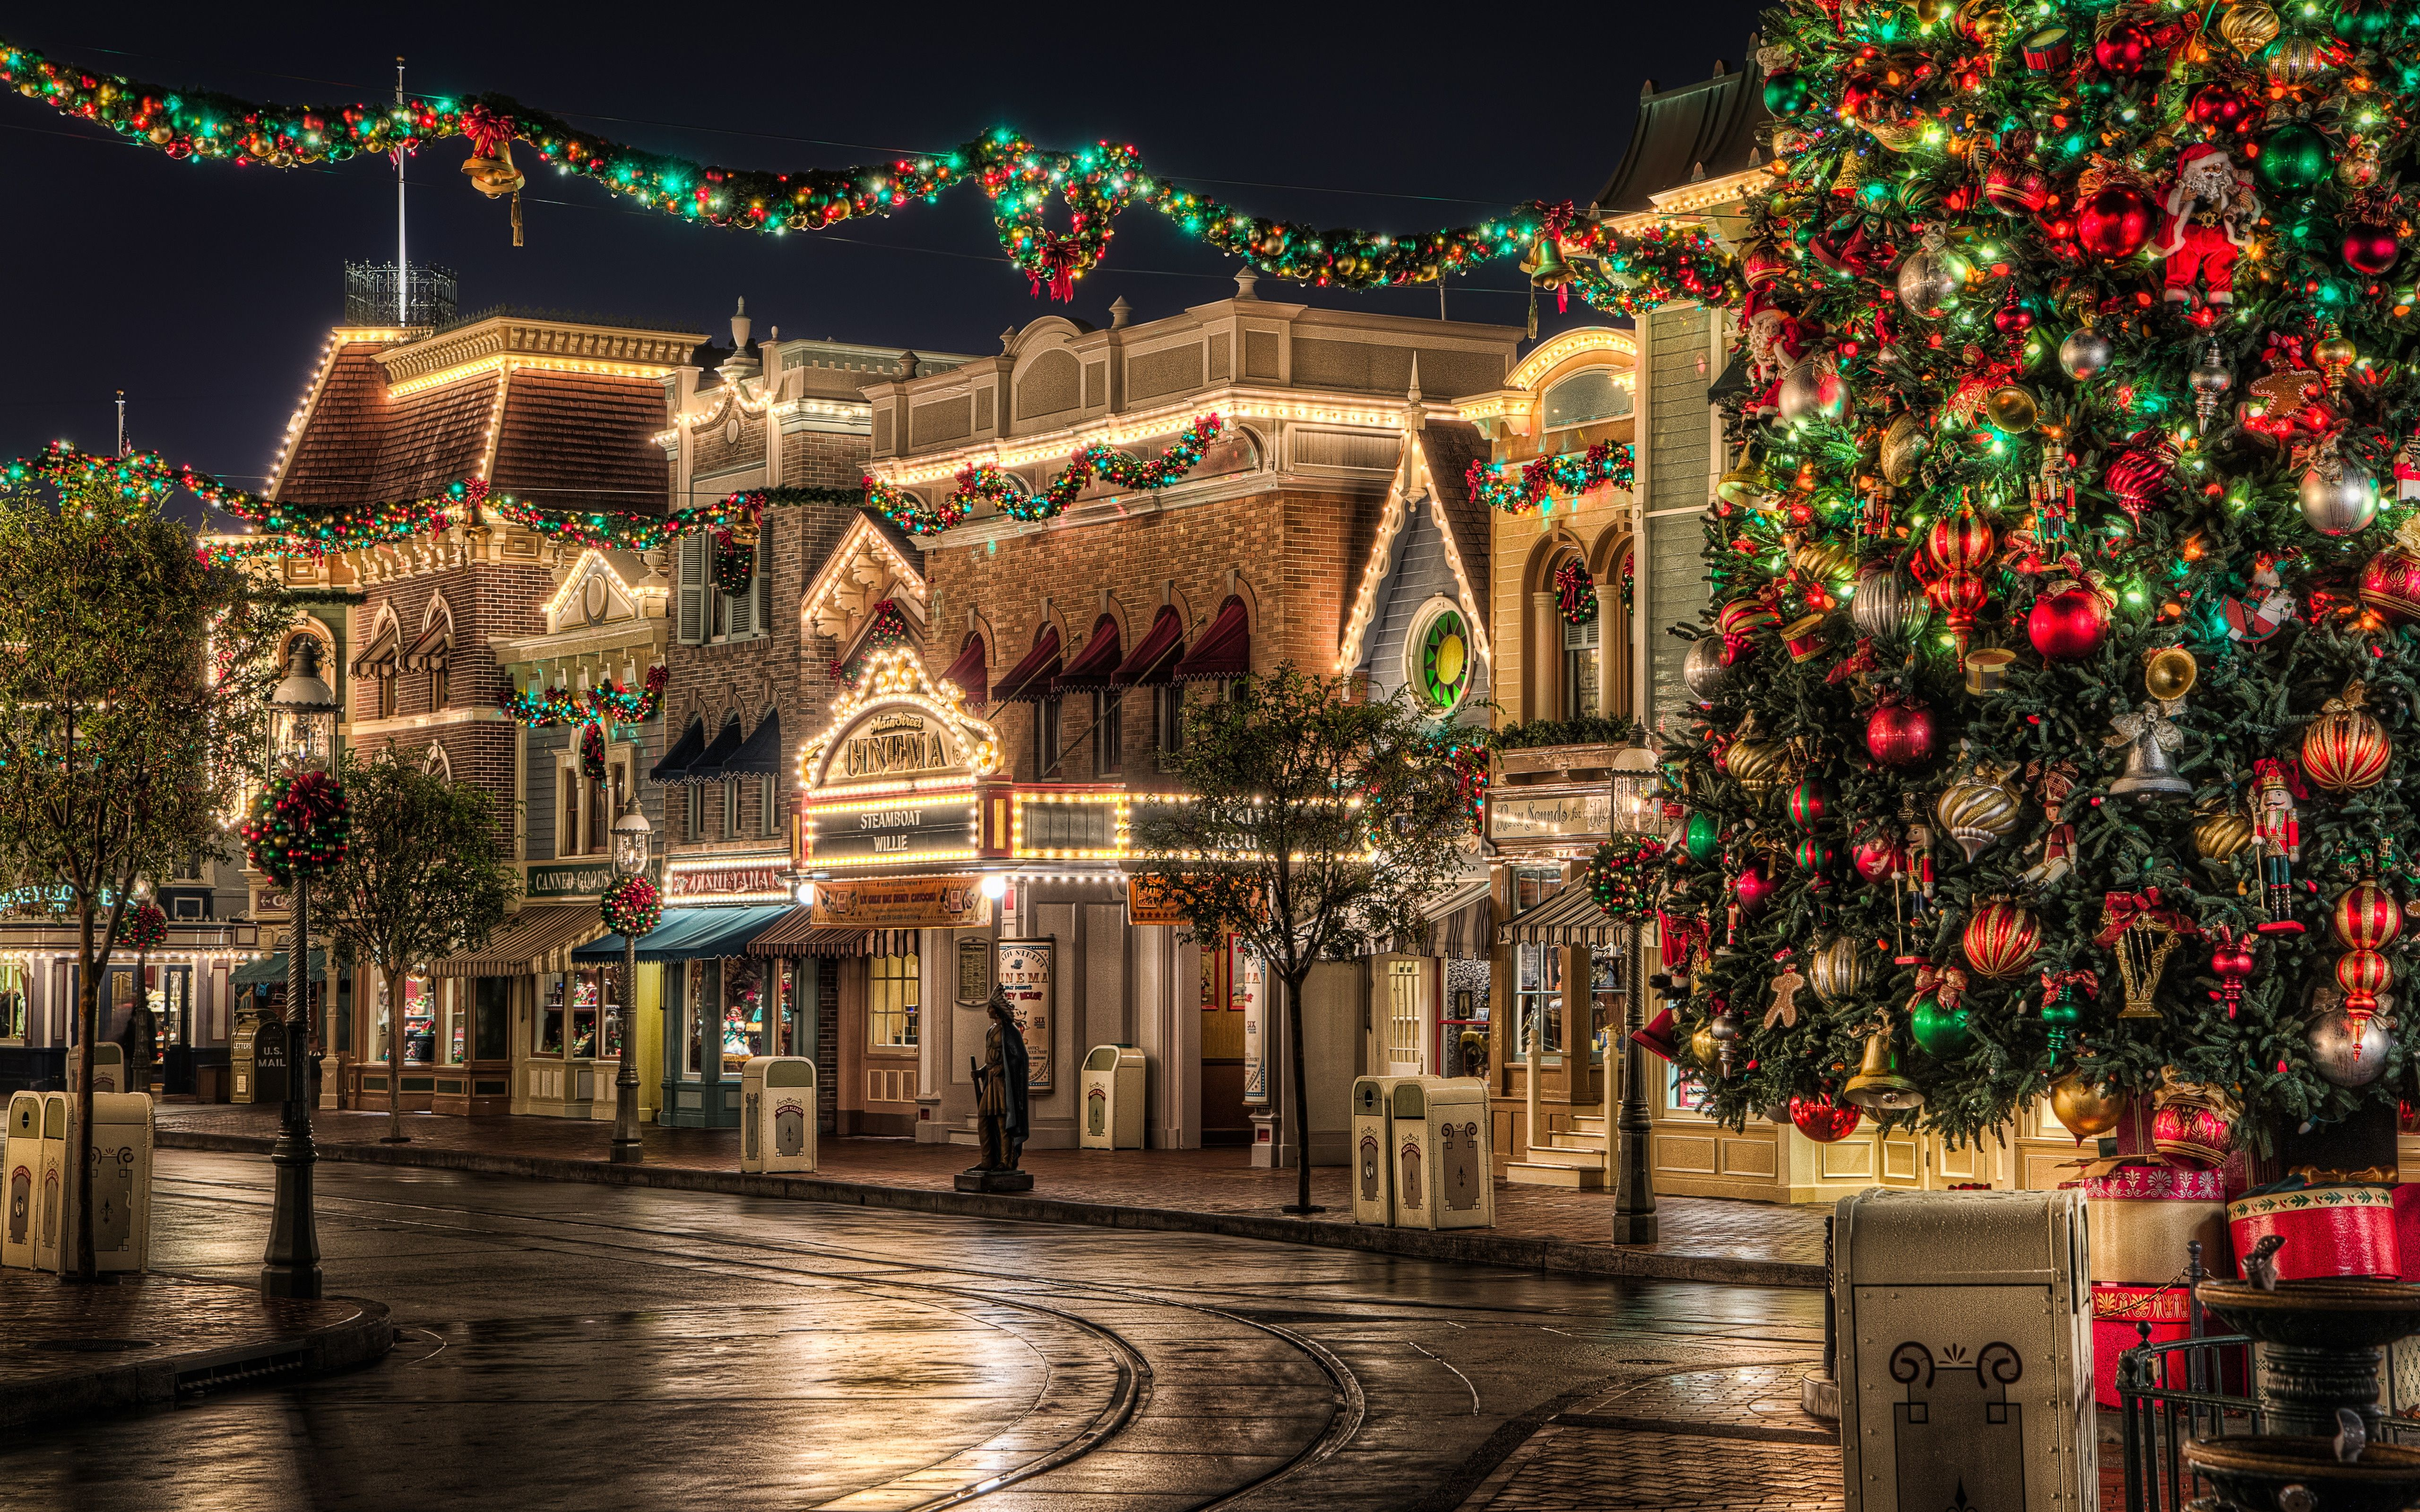 Christmas Lights Hd Wallpaper Disneyland Main Street Wallpaper Phone 4T4